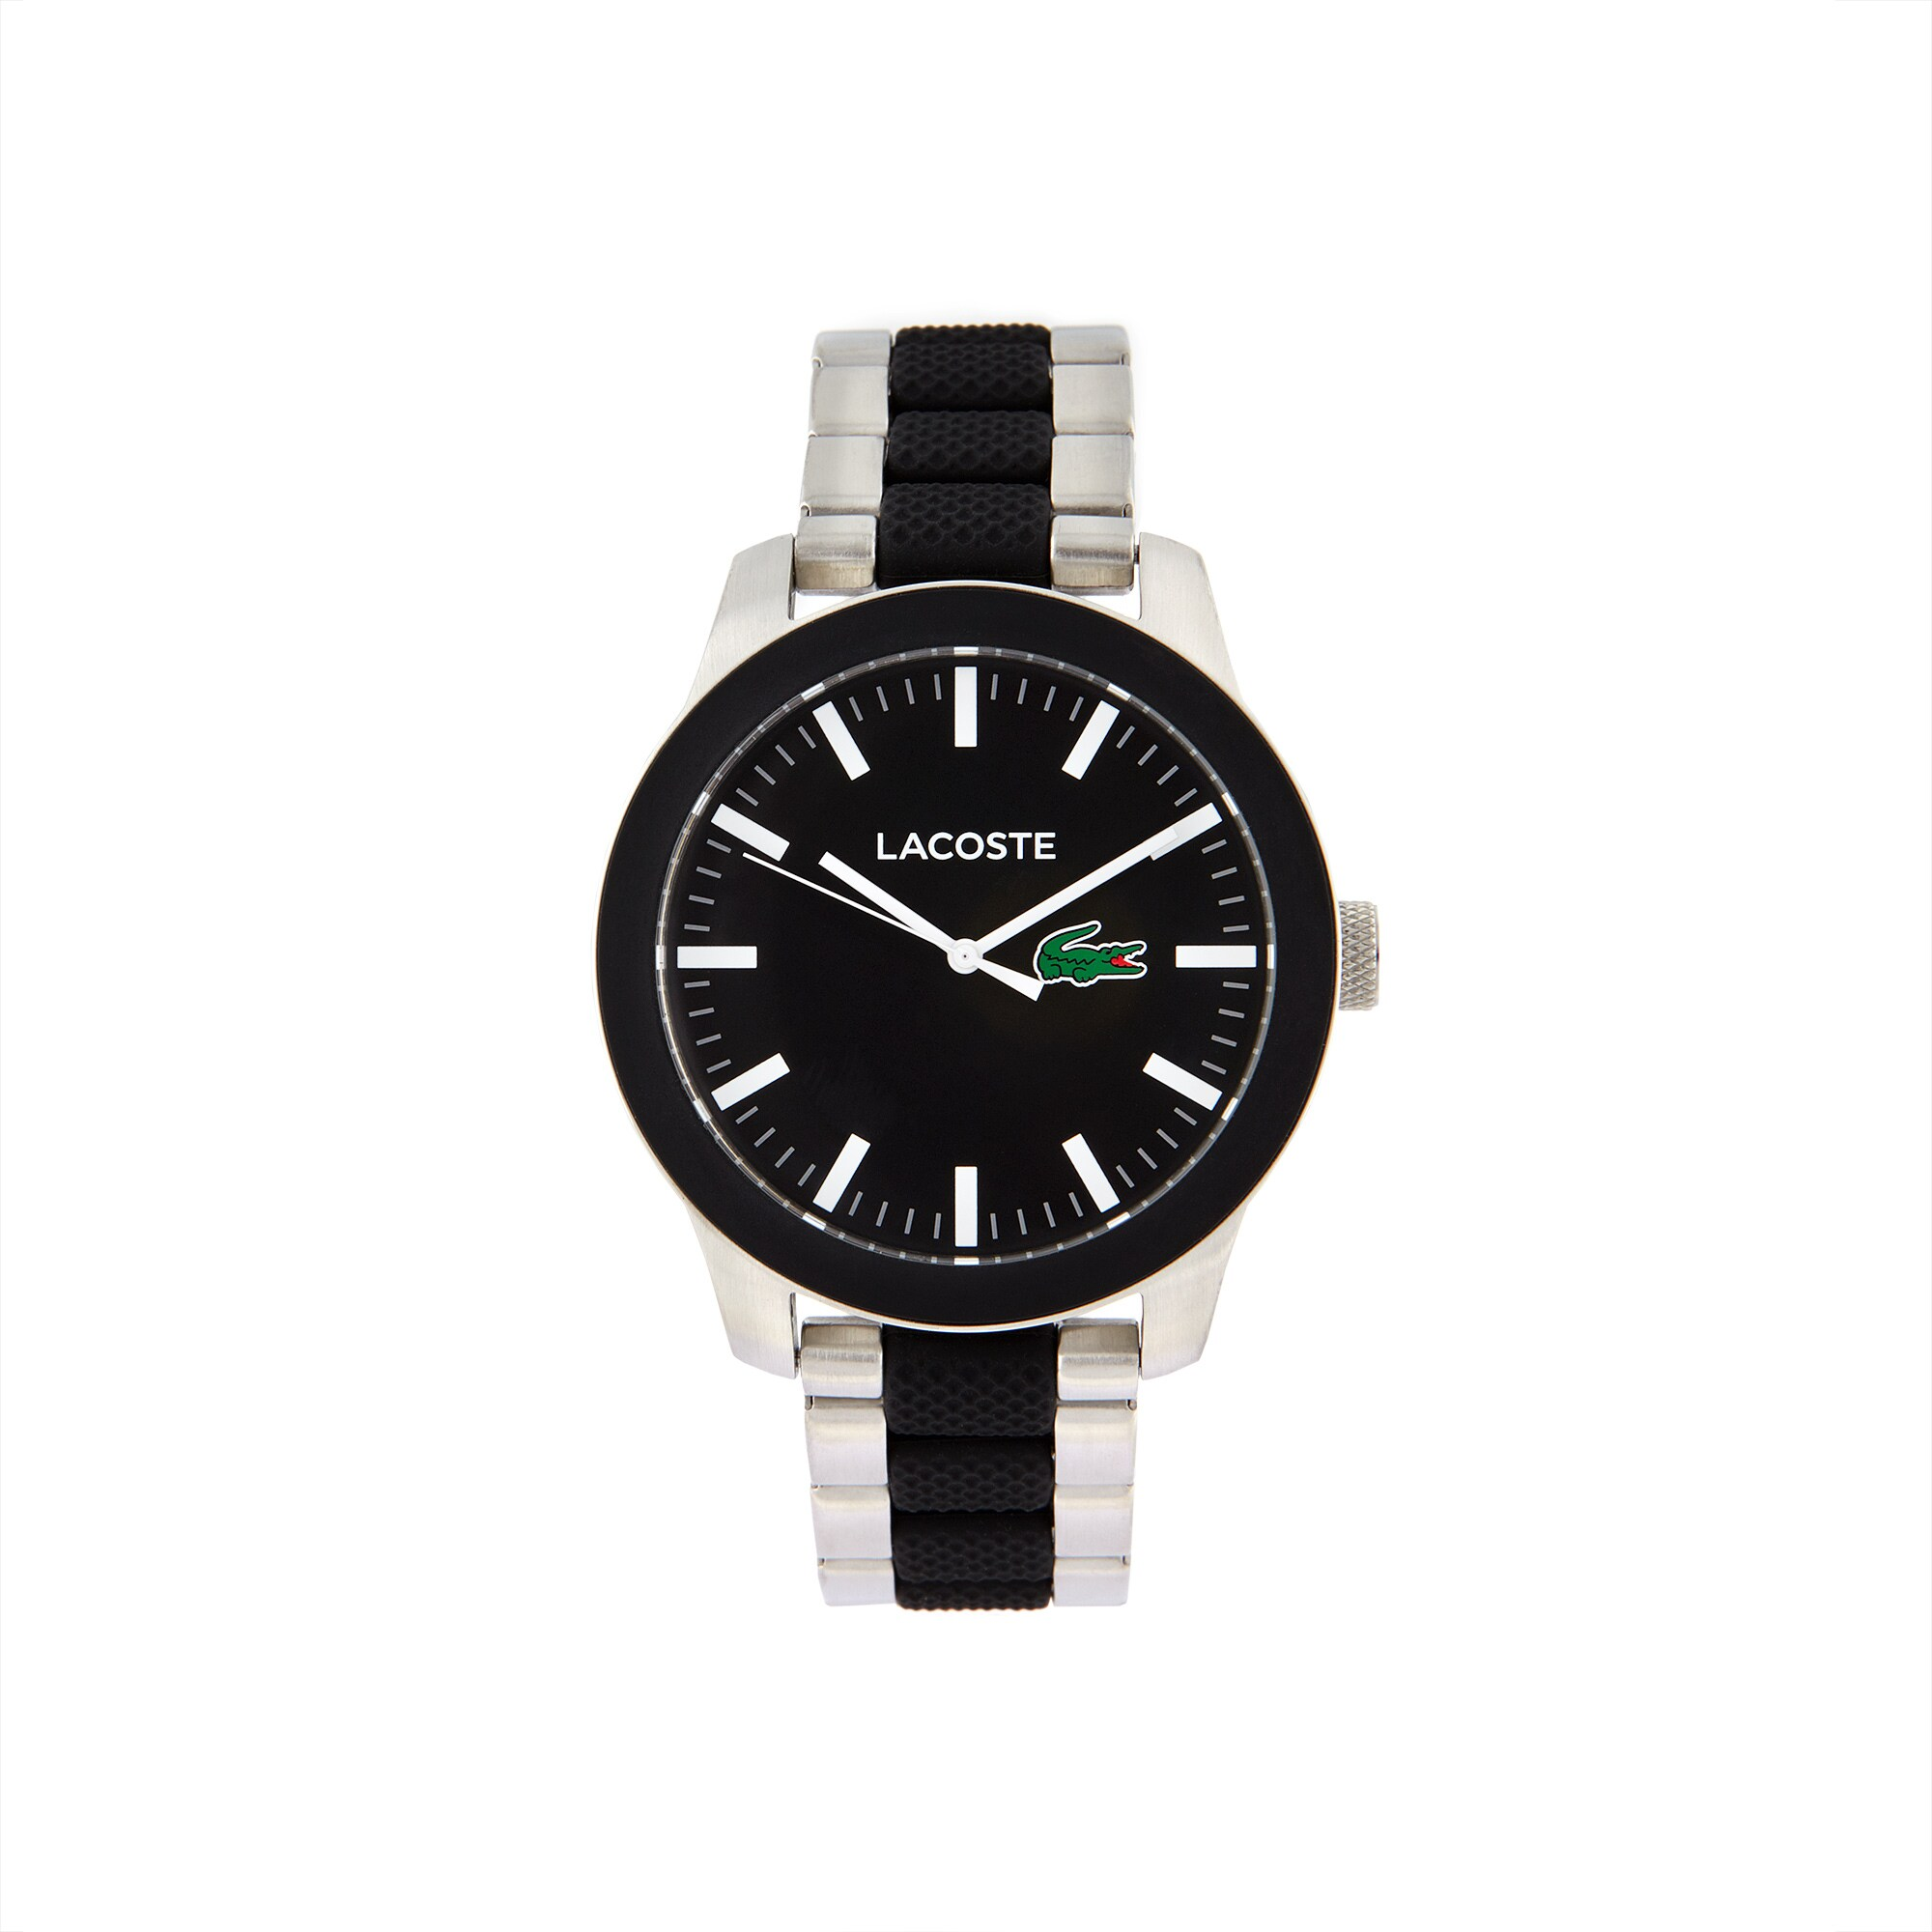 Men's Lacoste 12.12 Watch with Bi-material Black Silicone and Stainless Steel Bracelet